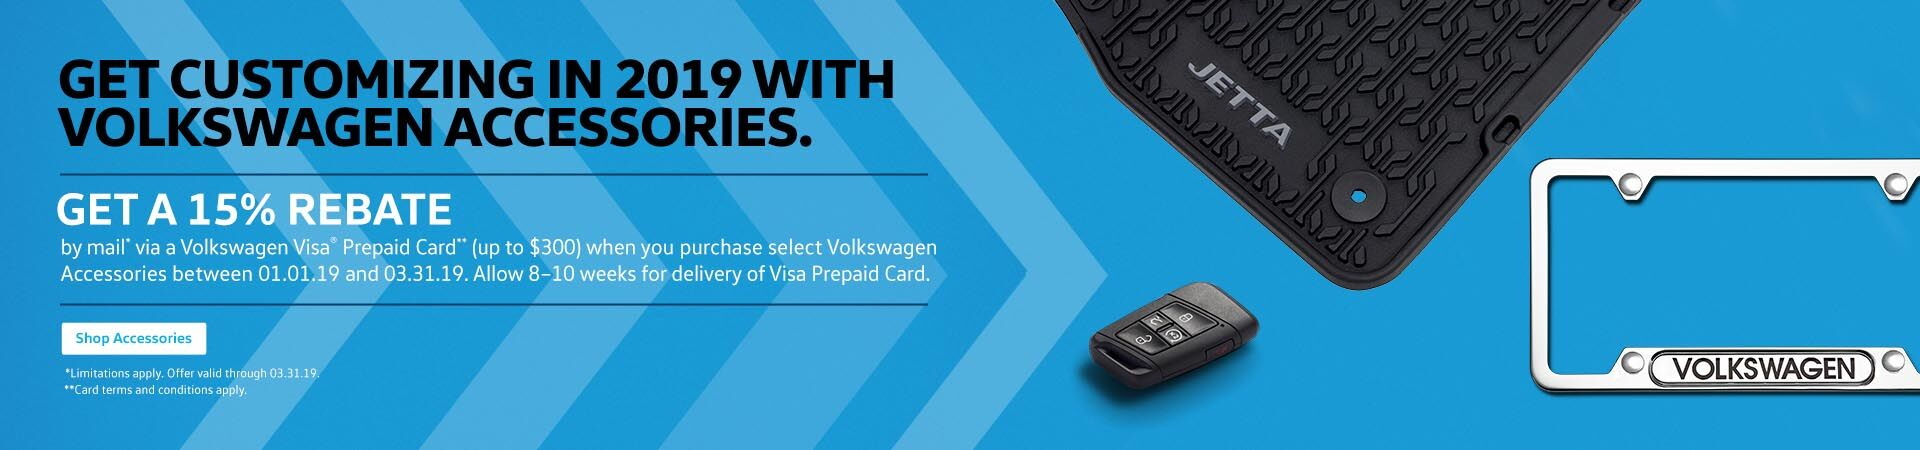 VW Accessories Rebate